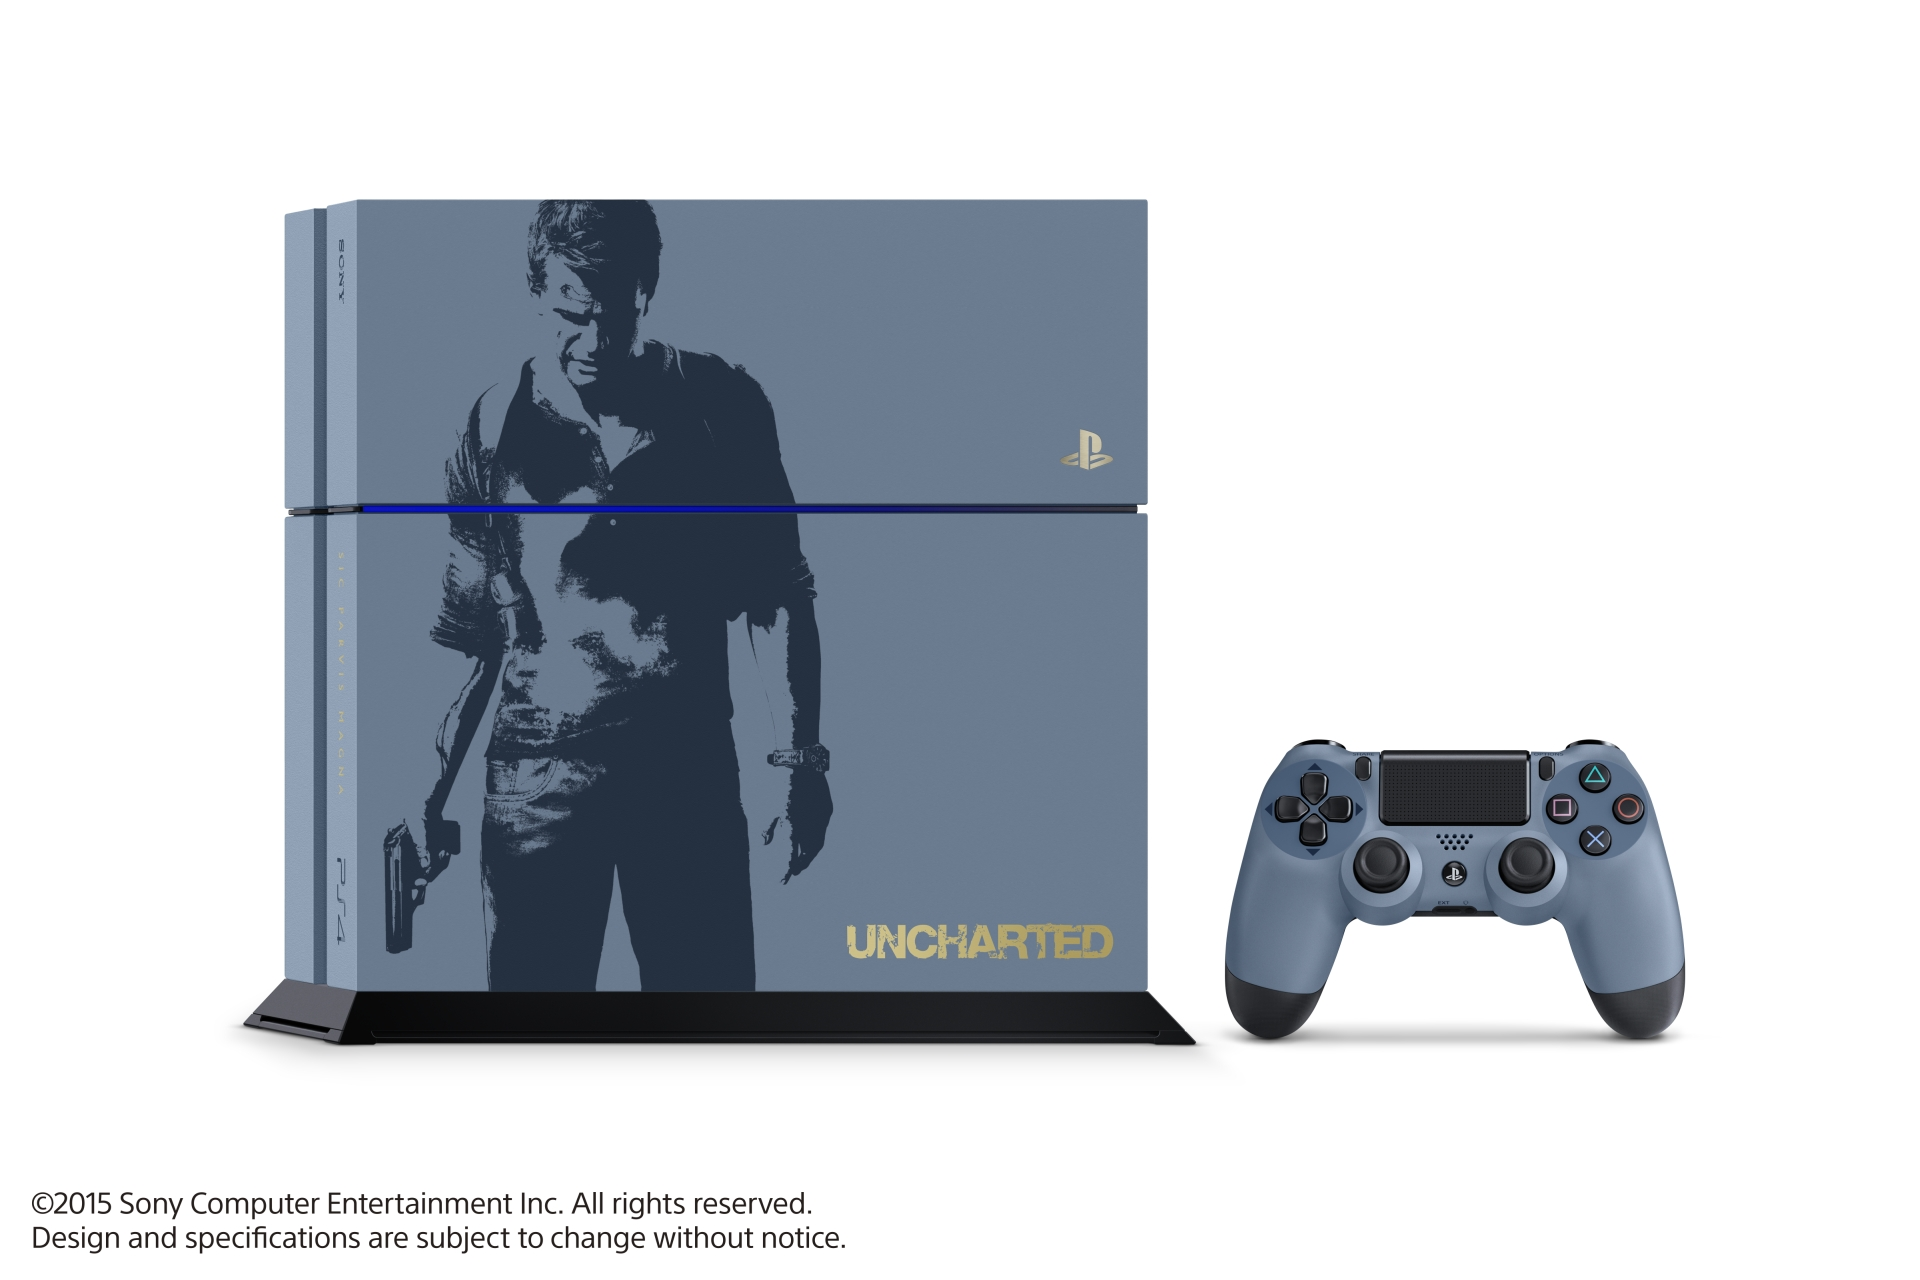 1454595094-limited-edition-uncharted-4-playstation-4-bundle